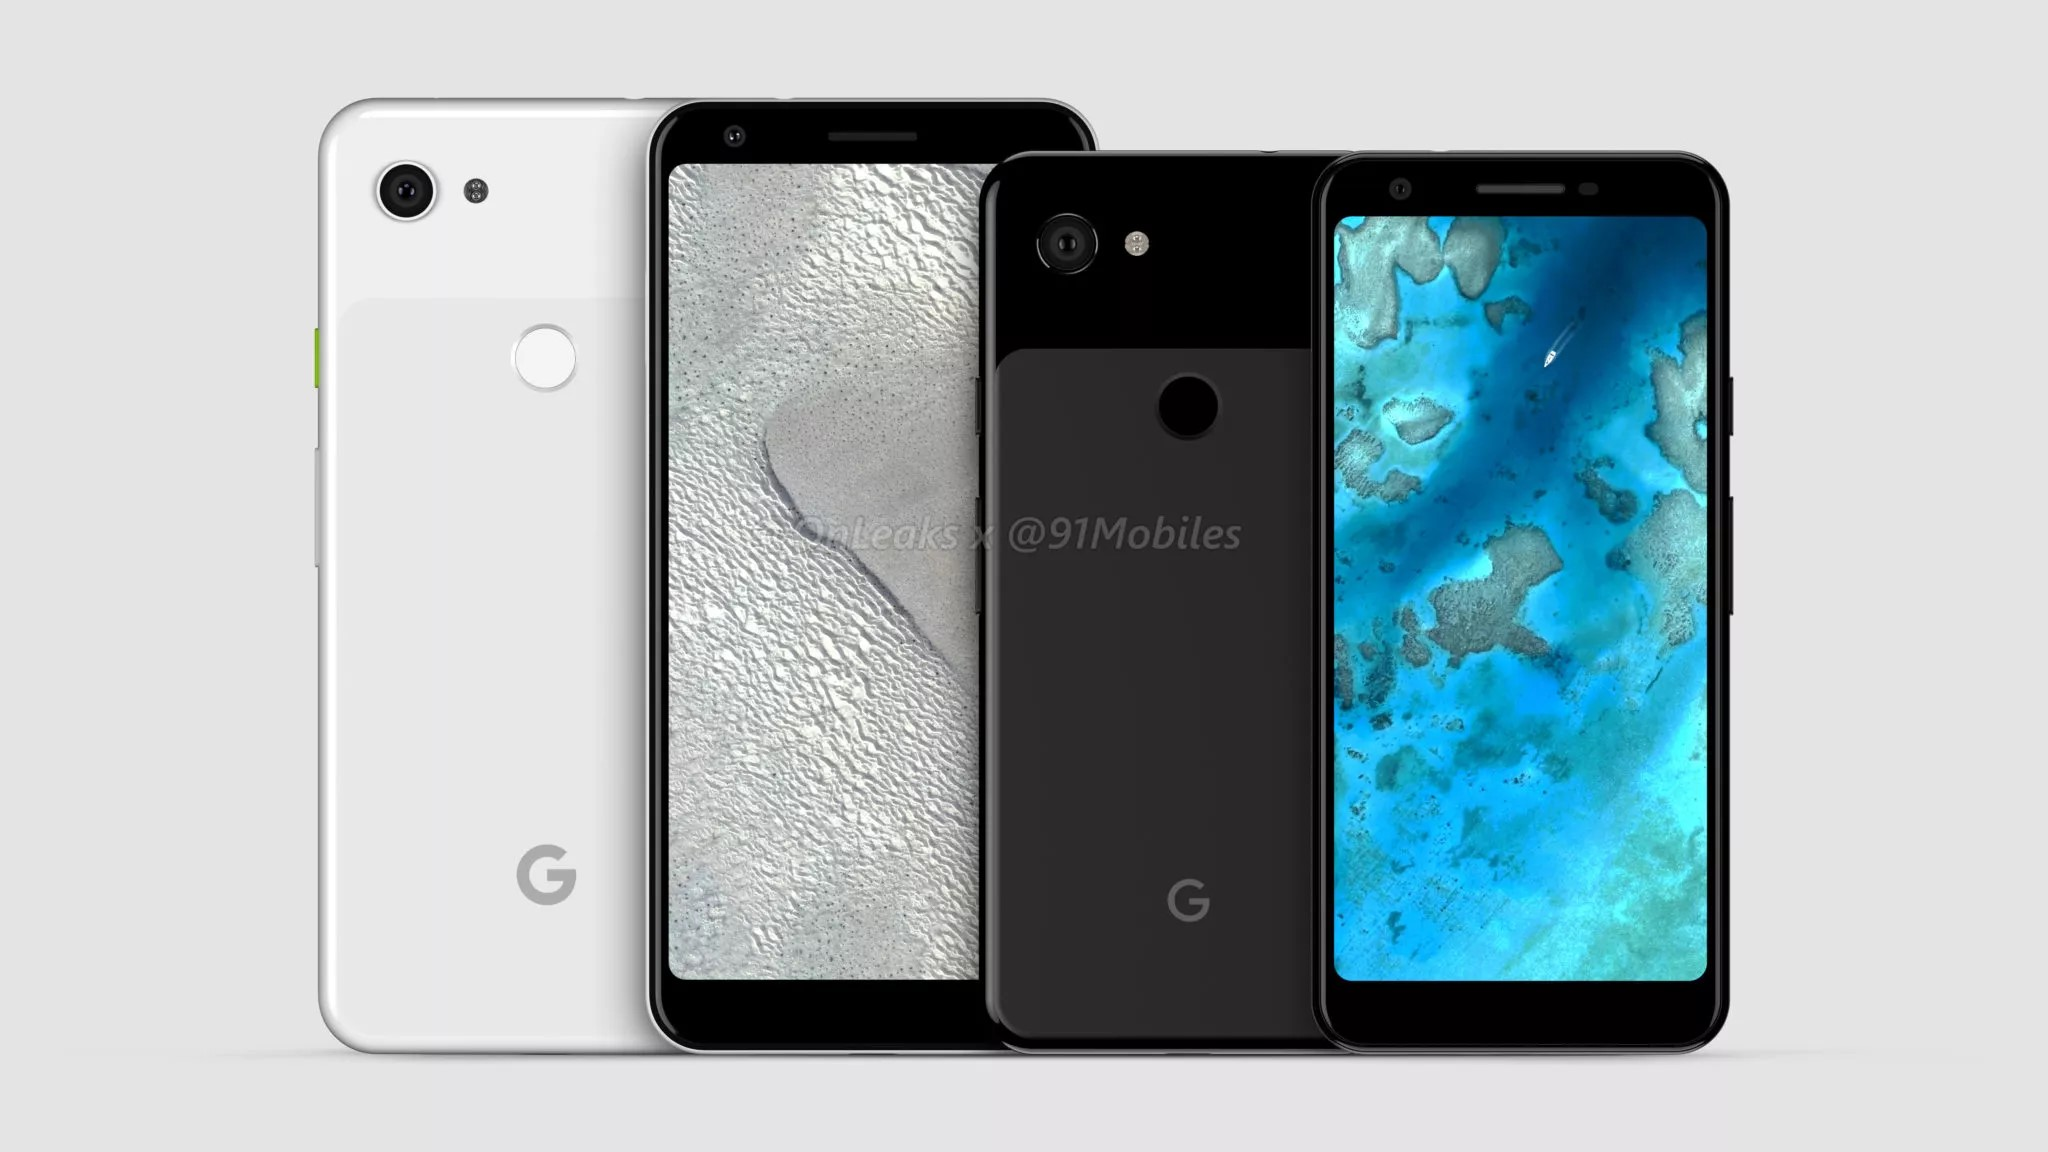 Google Pixel 3a may have an OLED panel but no wireless charging